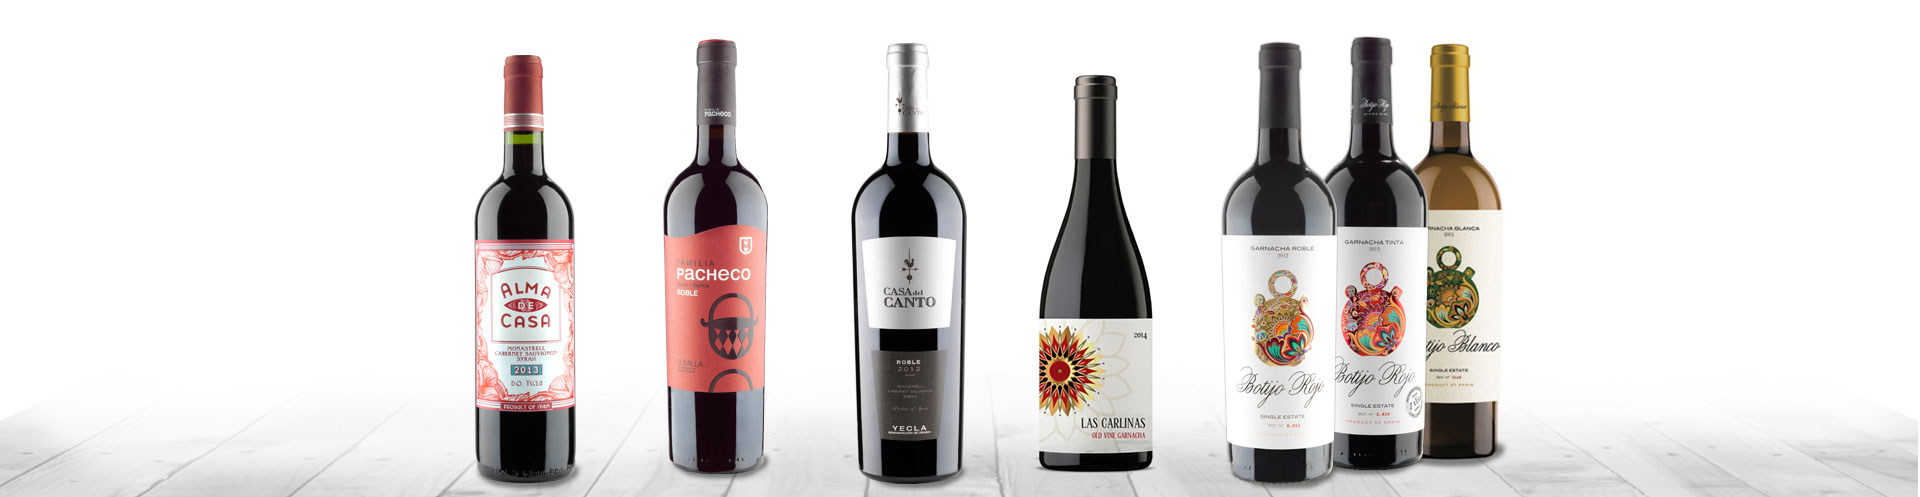 DISCOVERY-SPANISH-WINES-LONGWINES